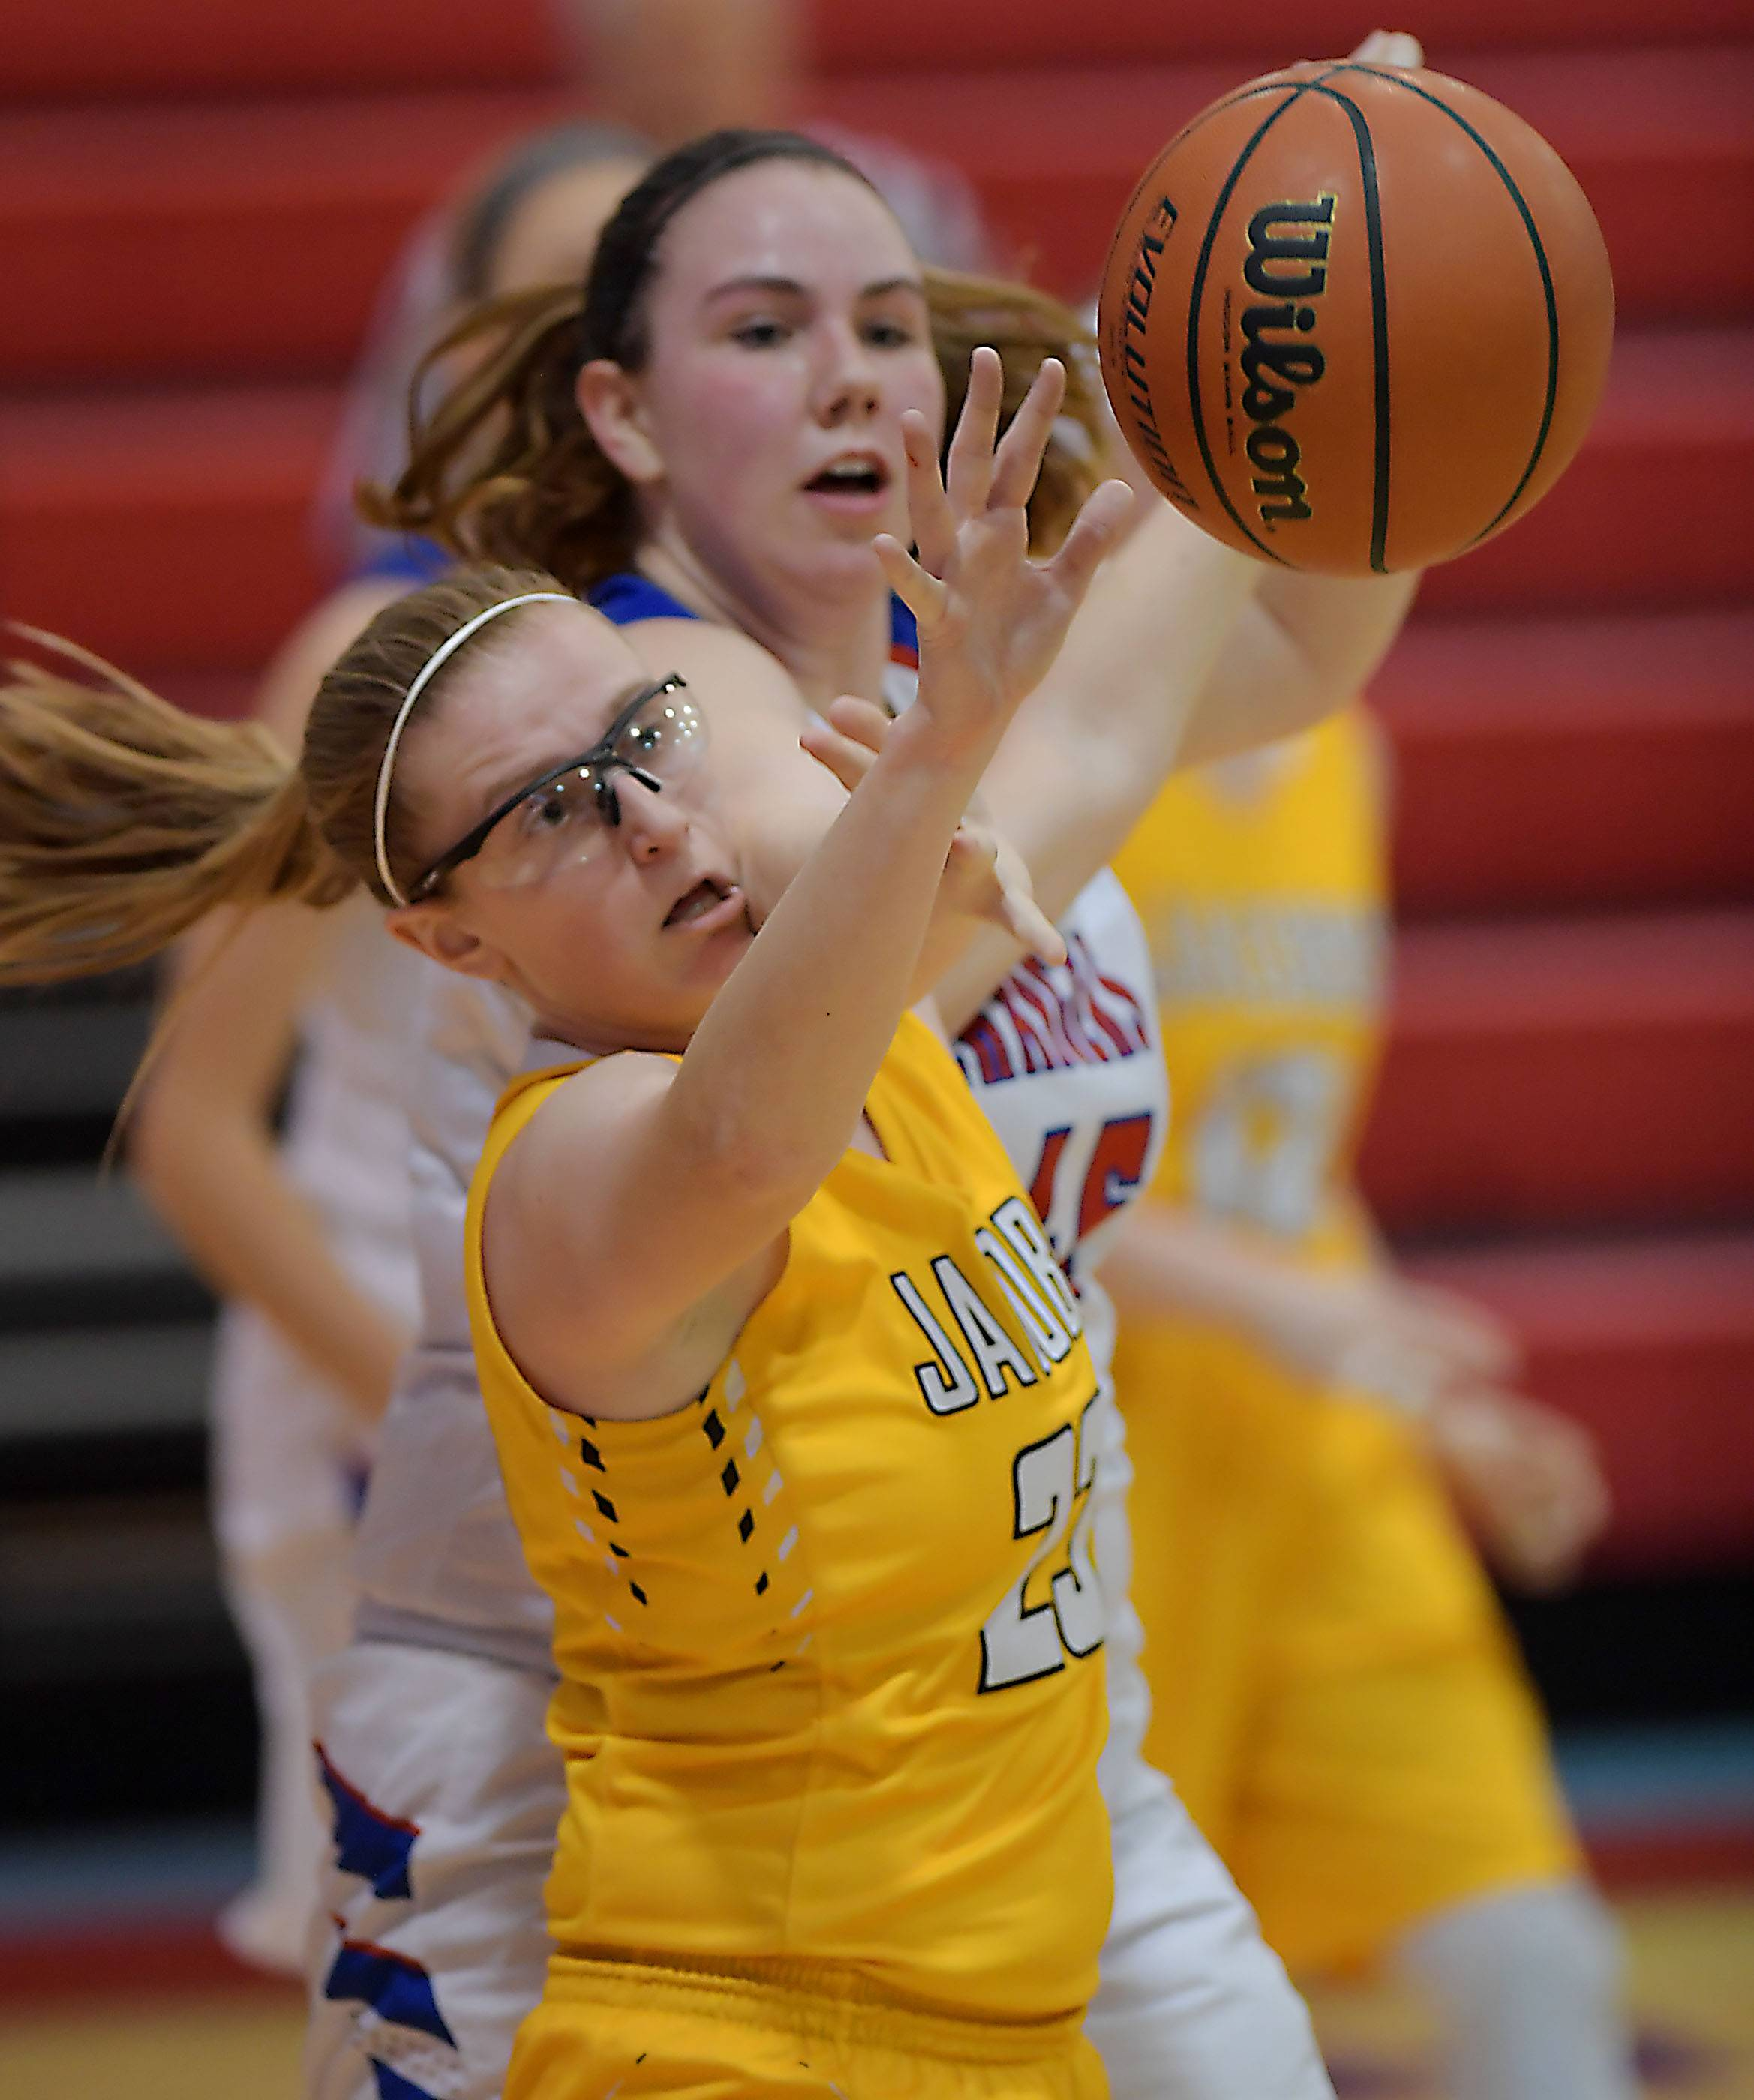 Jacobs' Kerri Healy reaches a rebound in front of Dundee-Crown's Madilyn Tripp Saturday in a girls basketball game in Carpentersville.